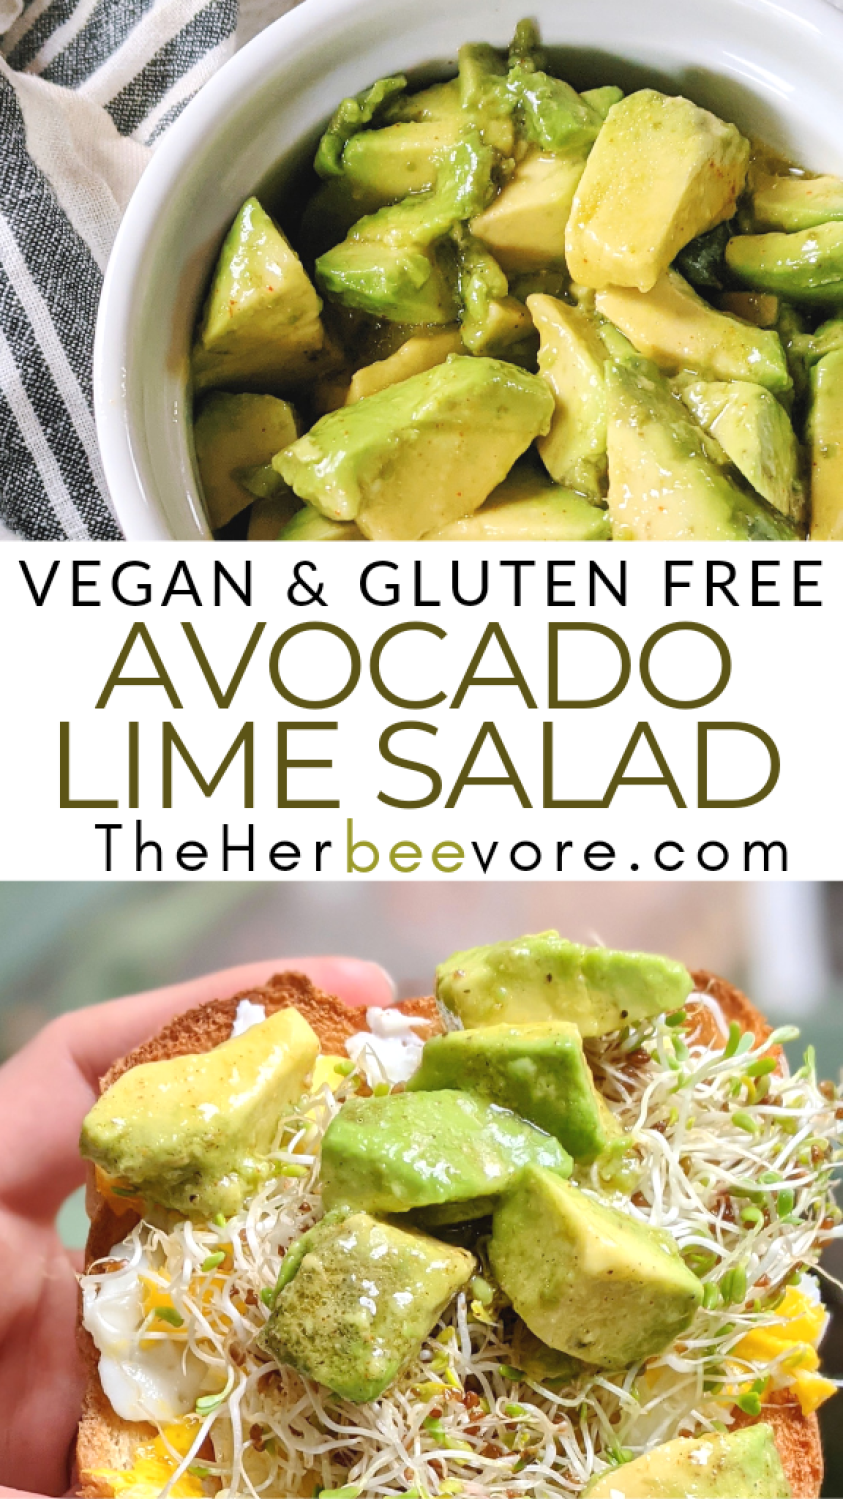 lime avocado salad recipe with lime vinaigrette dressing vegan gluten free healthy vegetarian avocado breakfast recipes salads with avocados plant based healthy fats for breakfast recipes